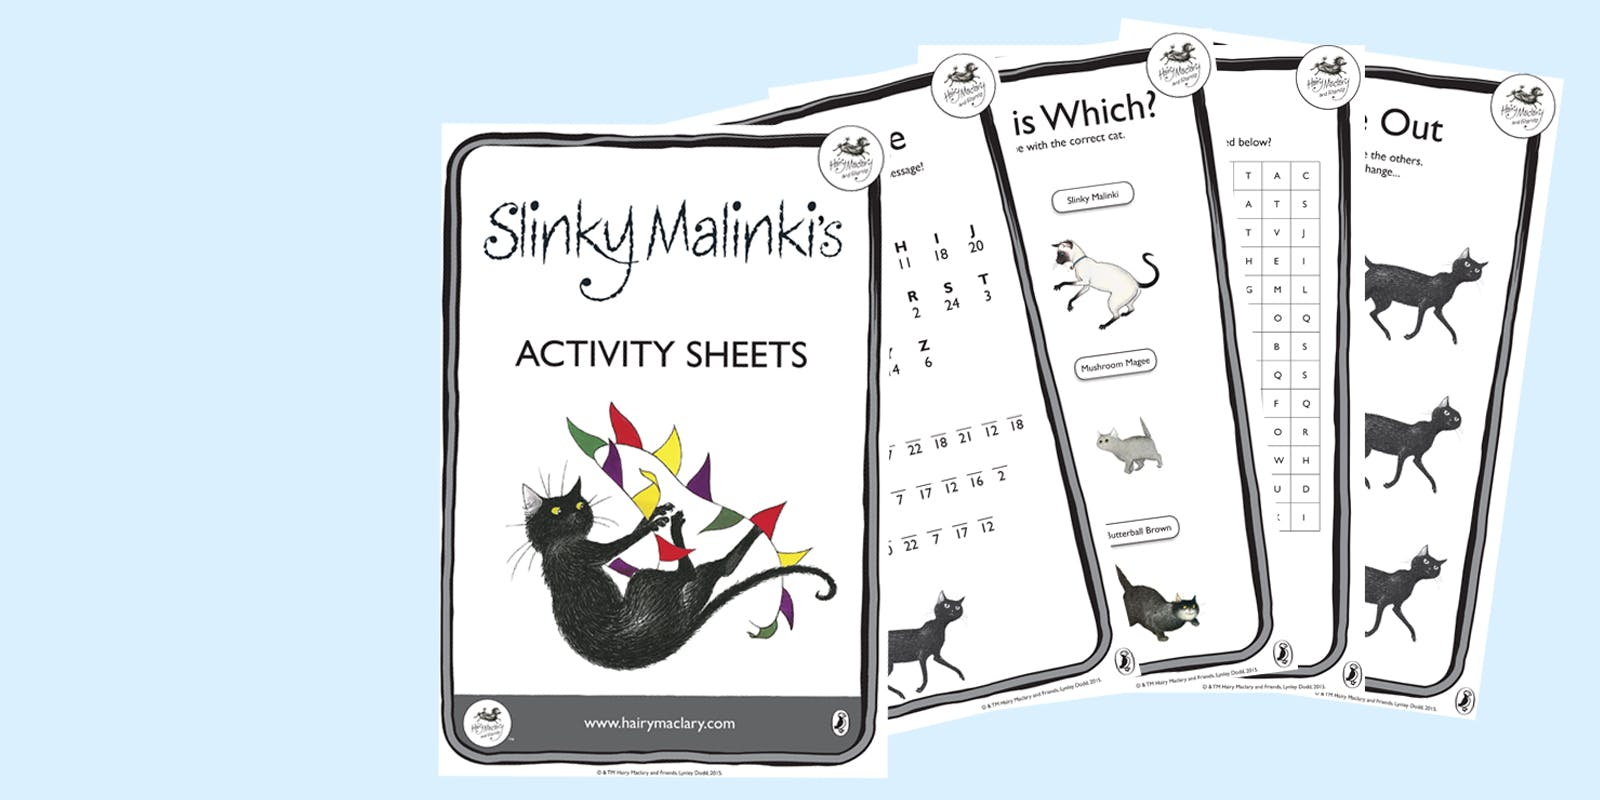 Slinky Malinki's activity sheets